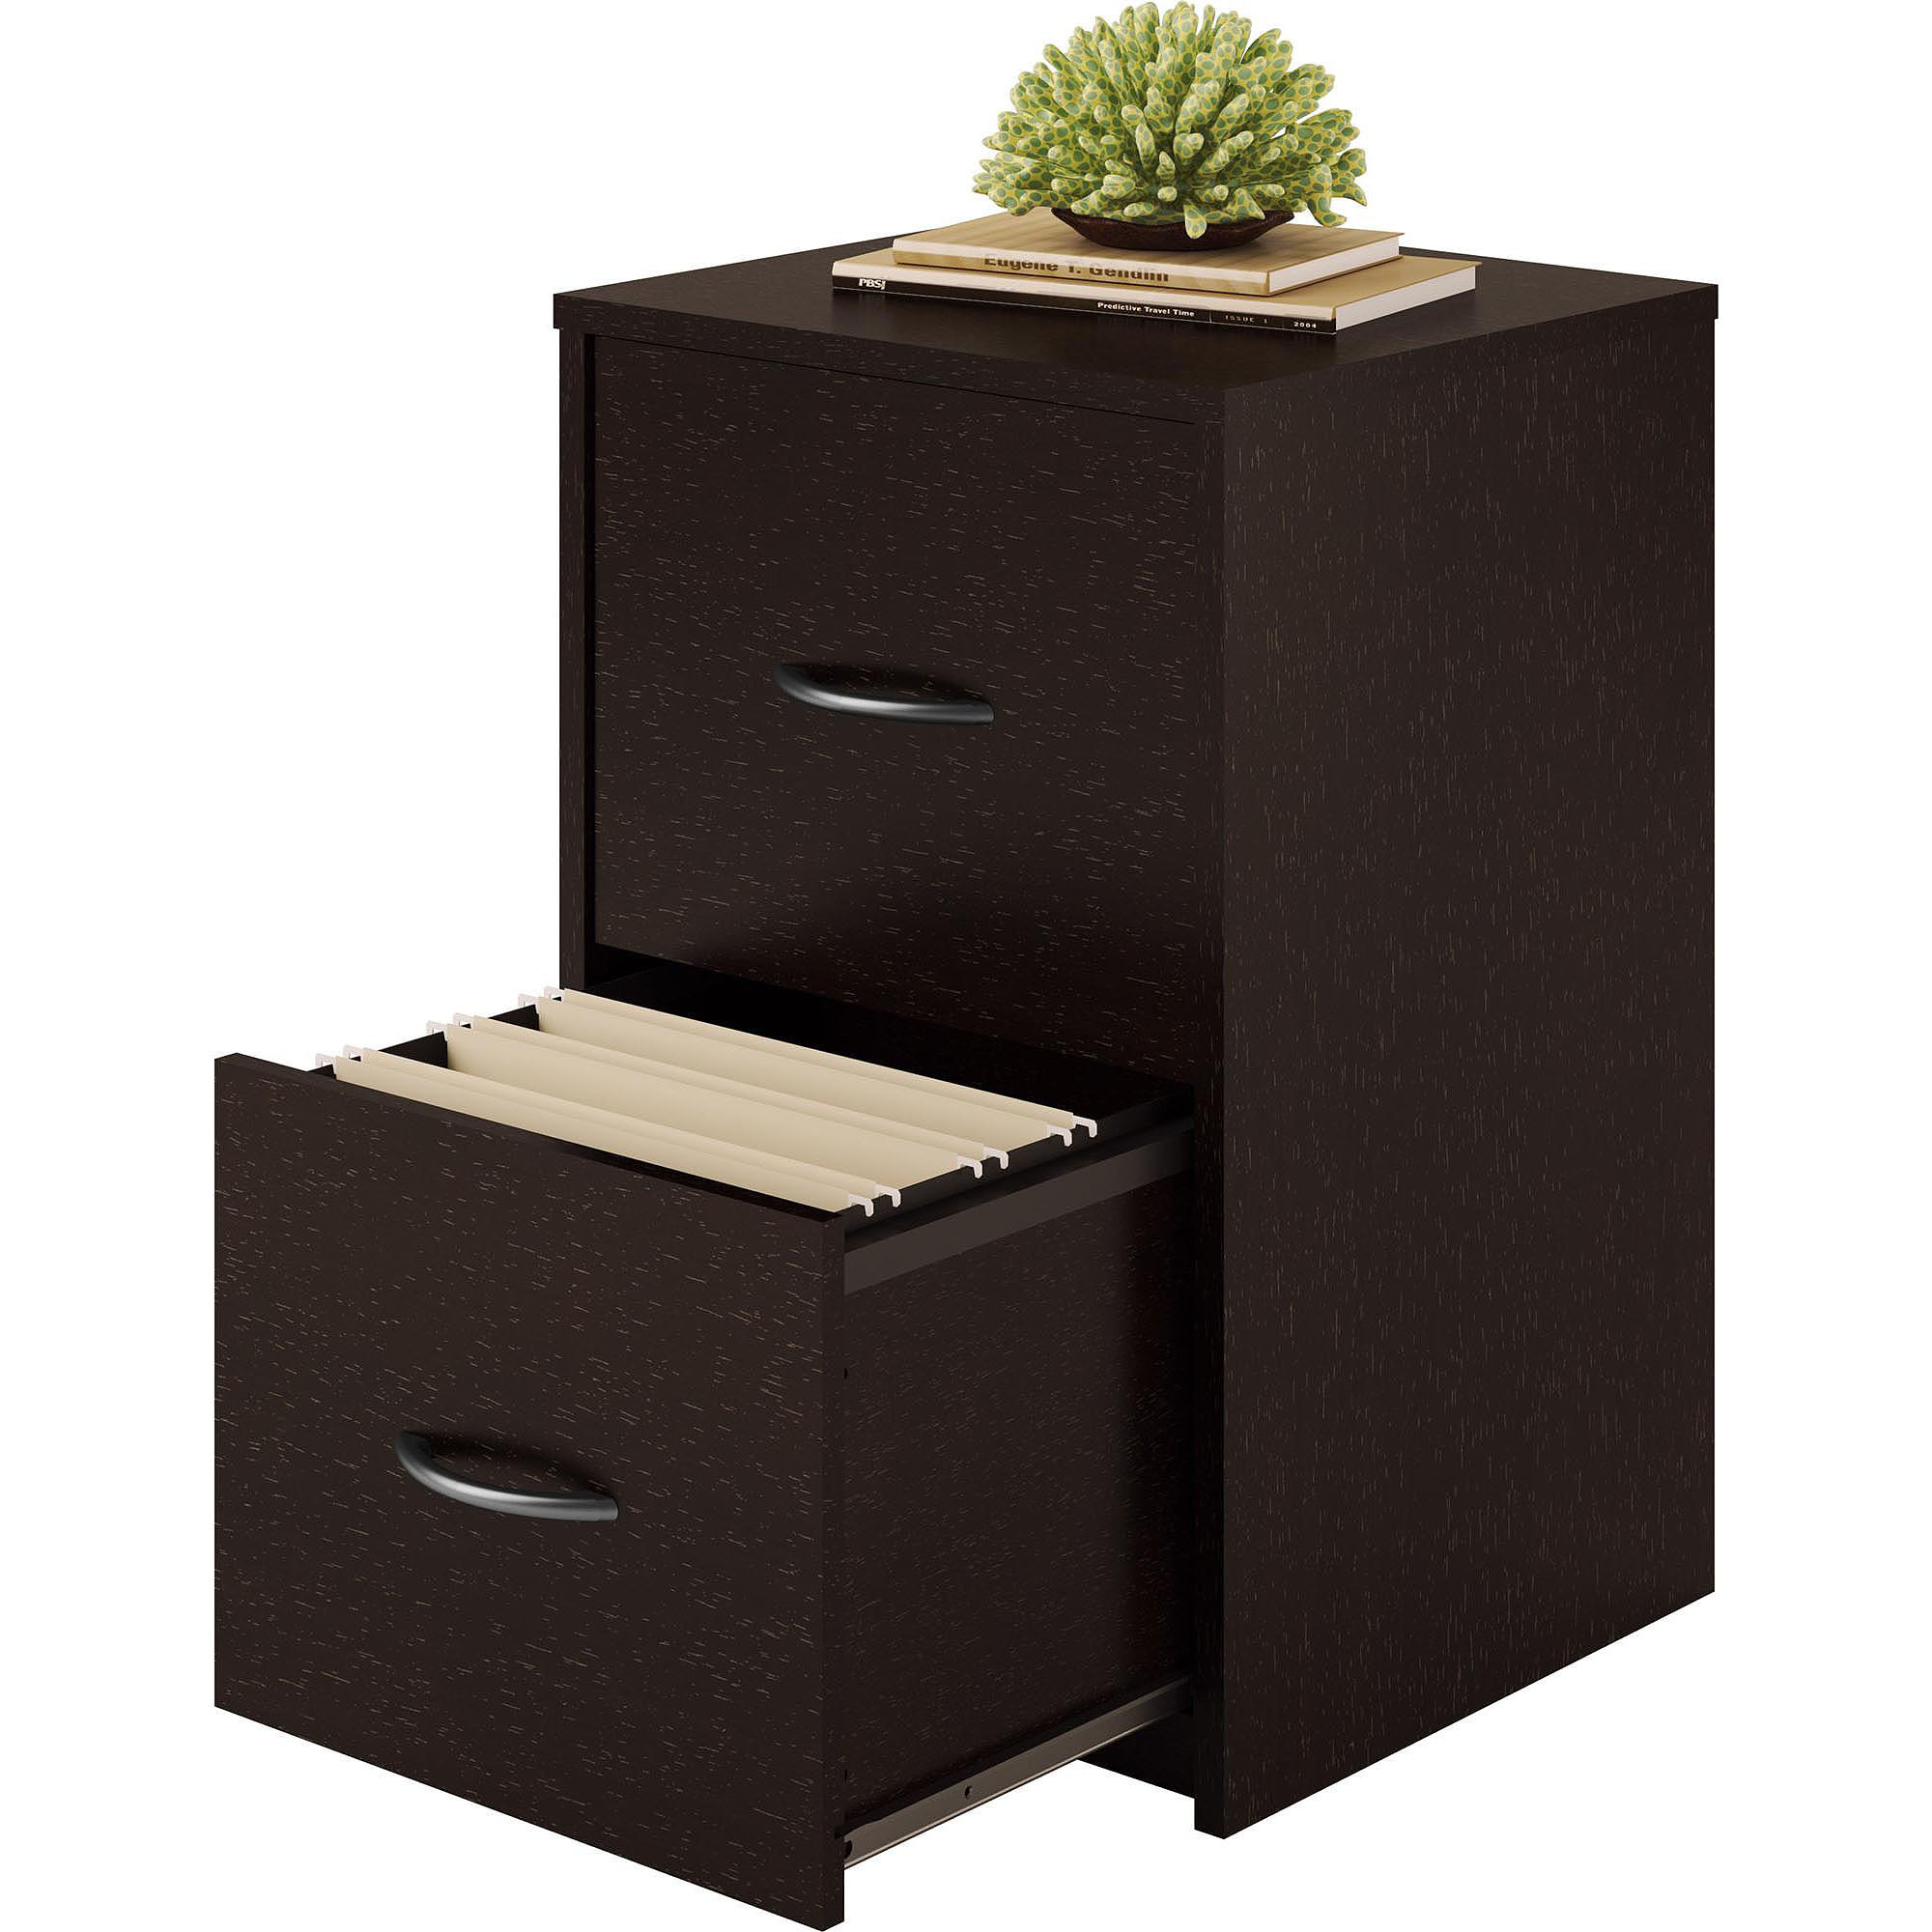 Best ideas about Walmart Filing Cabinet . Save or Pin 2 drawer file cabinets walmart Now.